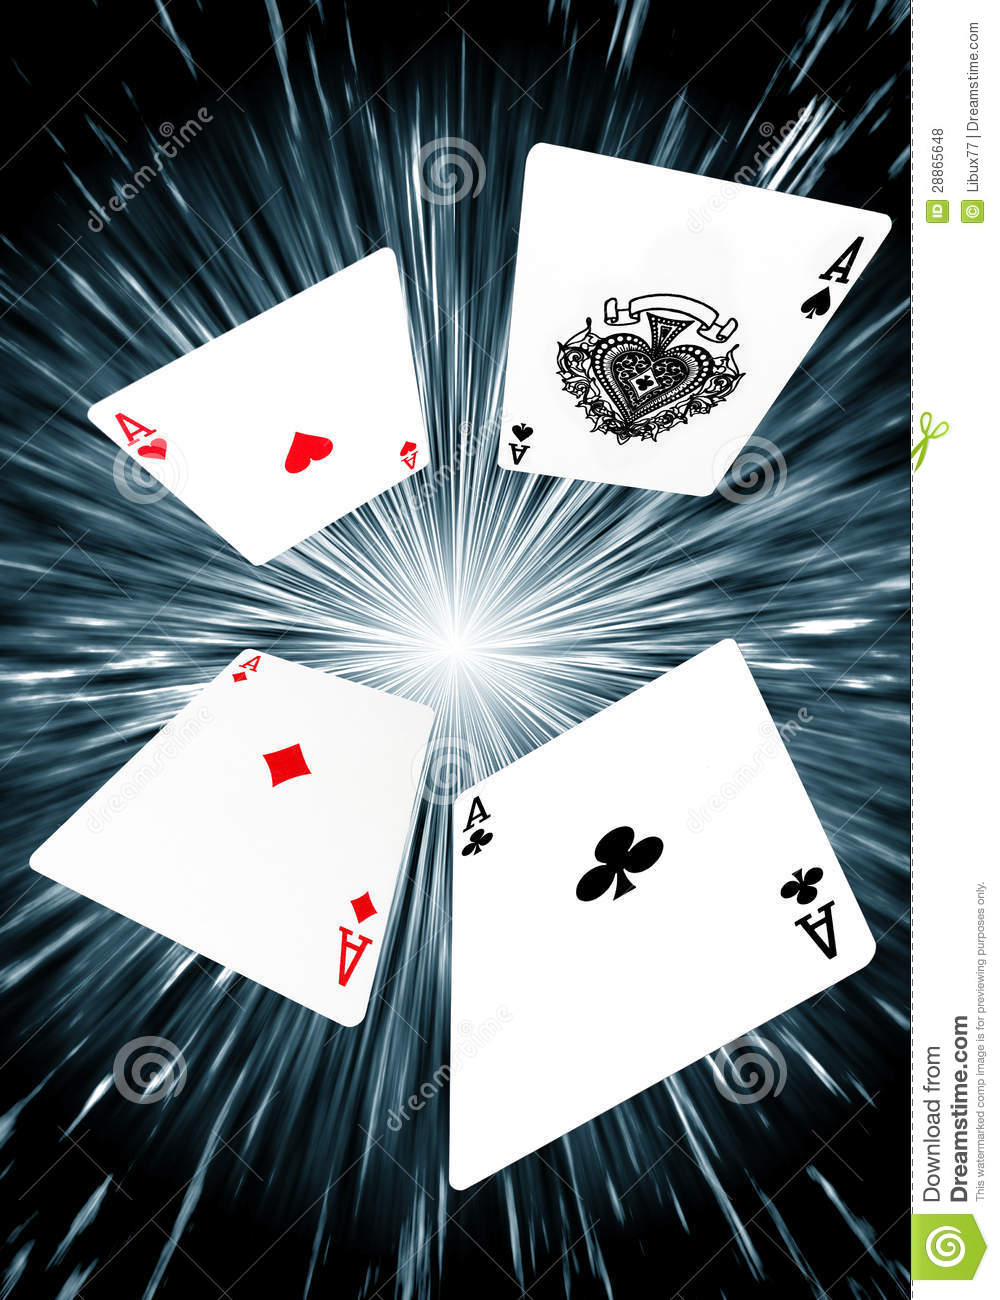 Casino online blackjack en vivo